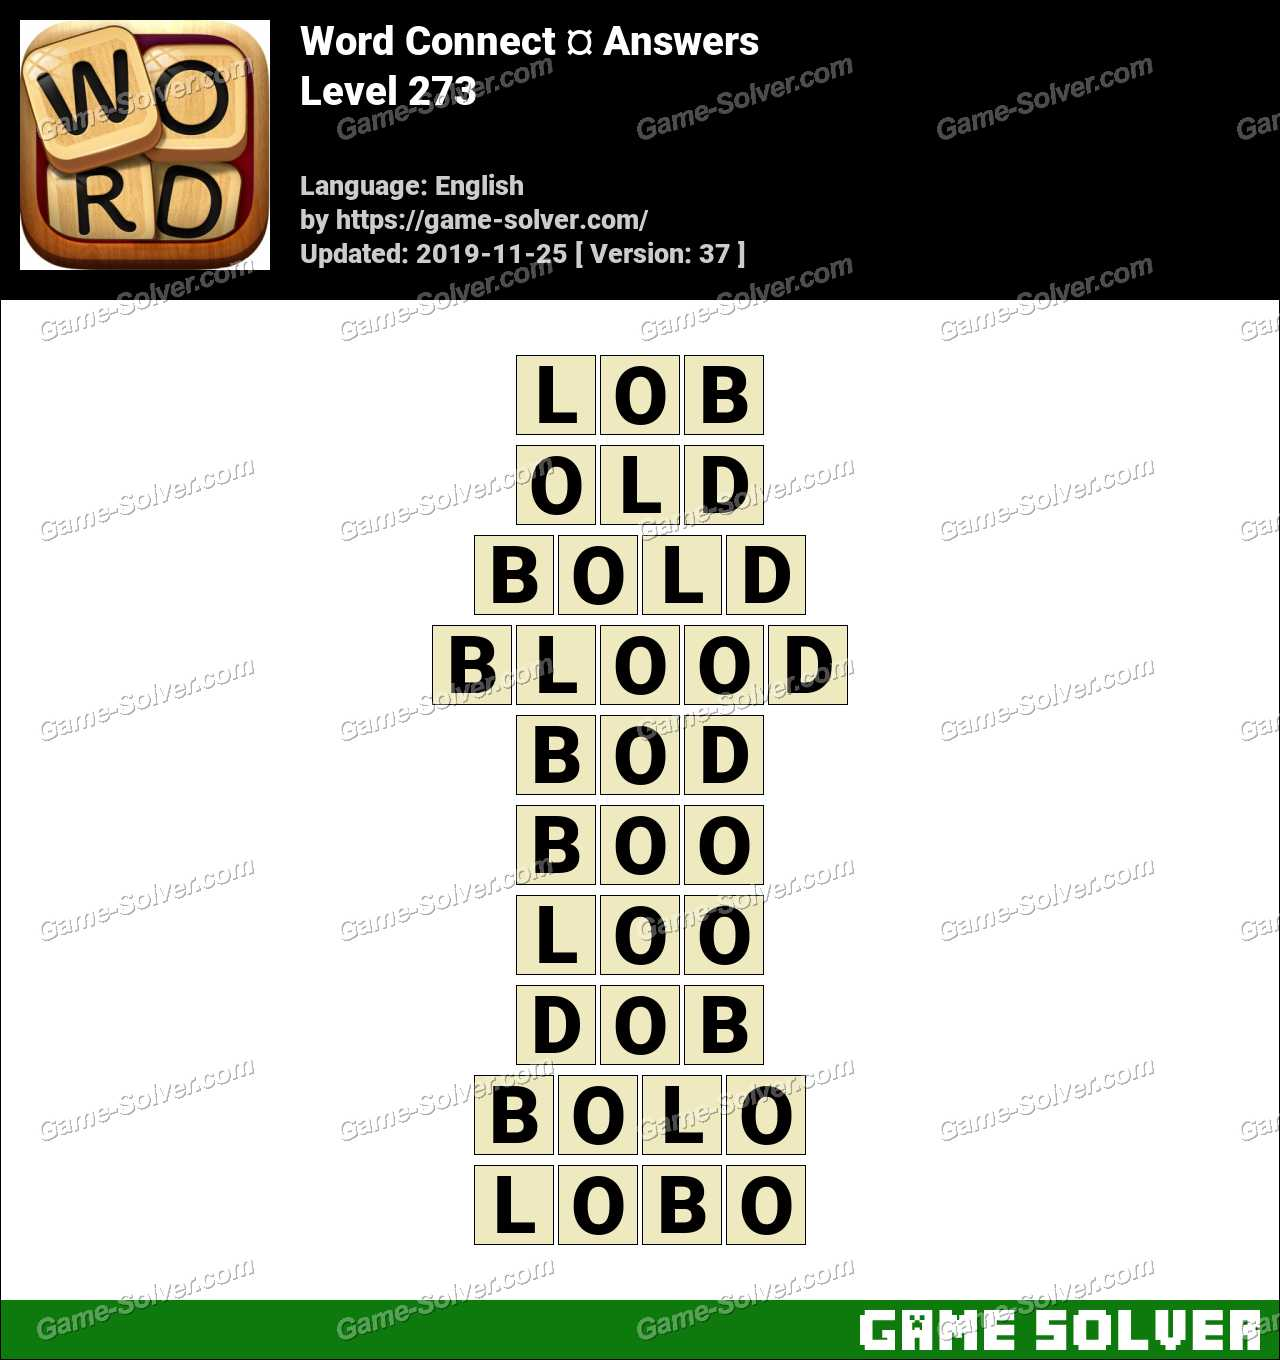 Word Connect Level 273 Answers